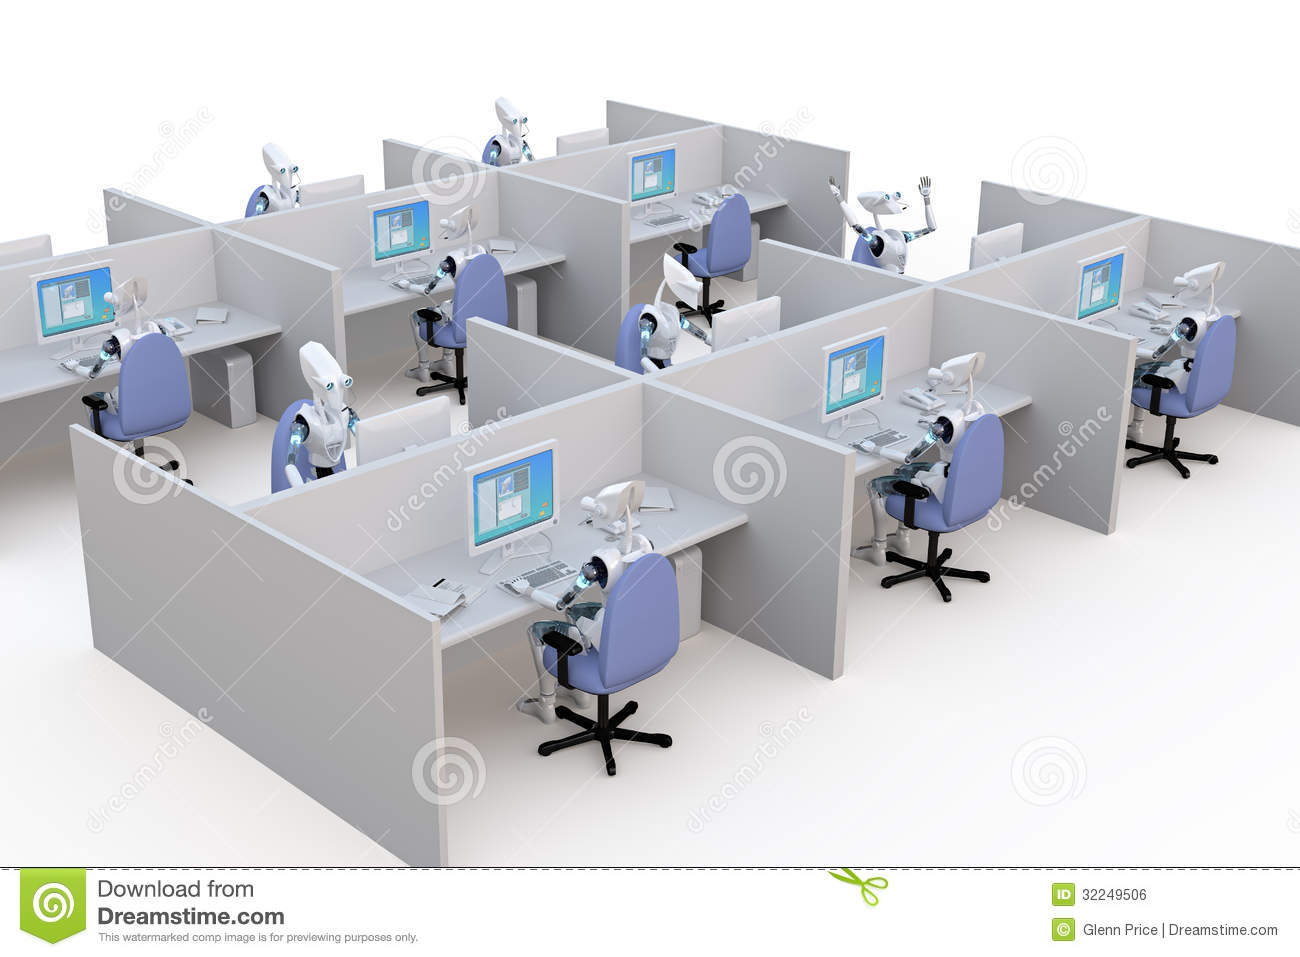 Royalty Free Stock Image Office Robots D Render Several Working Cubicles Against White Background Image32249506 on Office Cleaning Clip Art Free